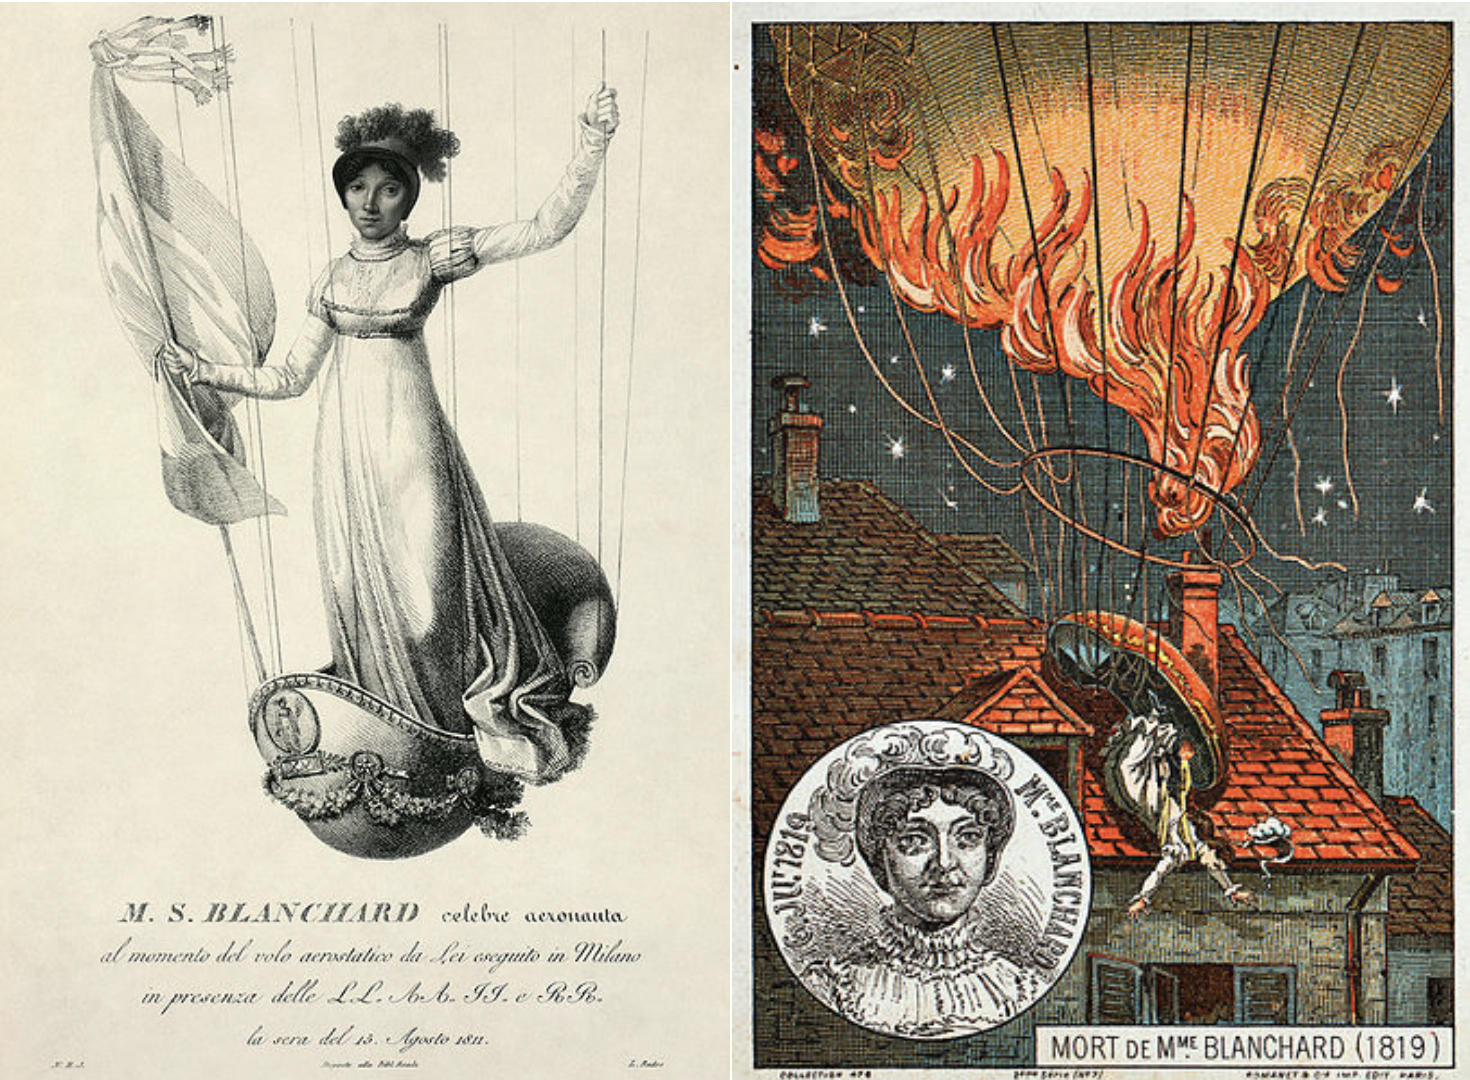 Left: a portrait of M.S. Blanchard  Right: drawing of M.S. Blanchard falling off a hot air ballon on a house roof.